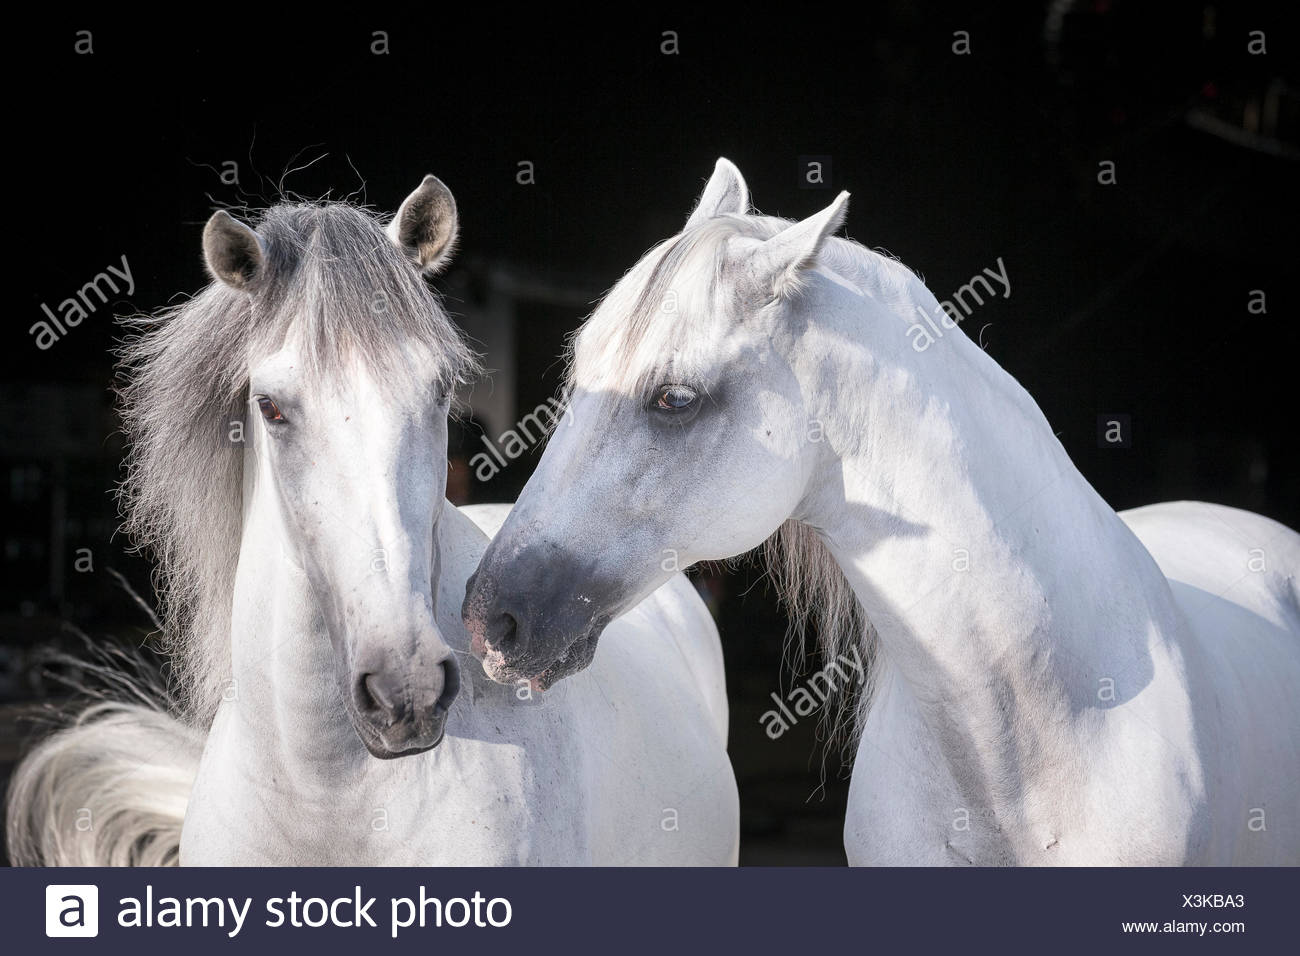 Pure Spanish Horse, Andalusian. Portrait of two gray stallions, seen against a black background. Germany - Stock Image